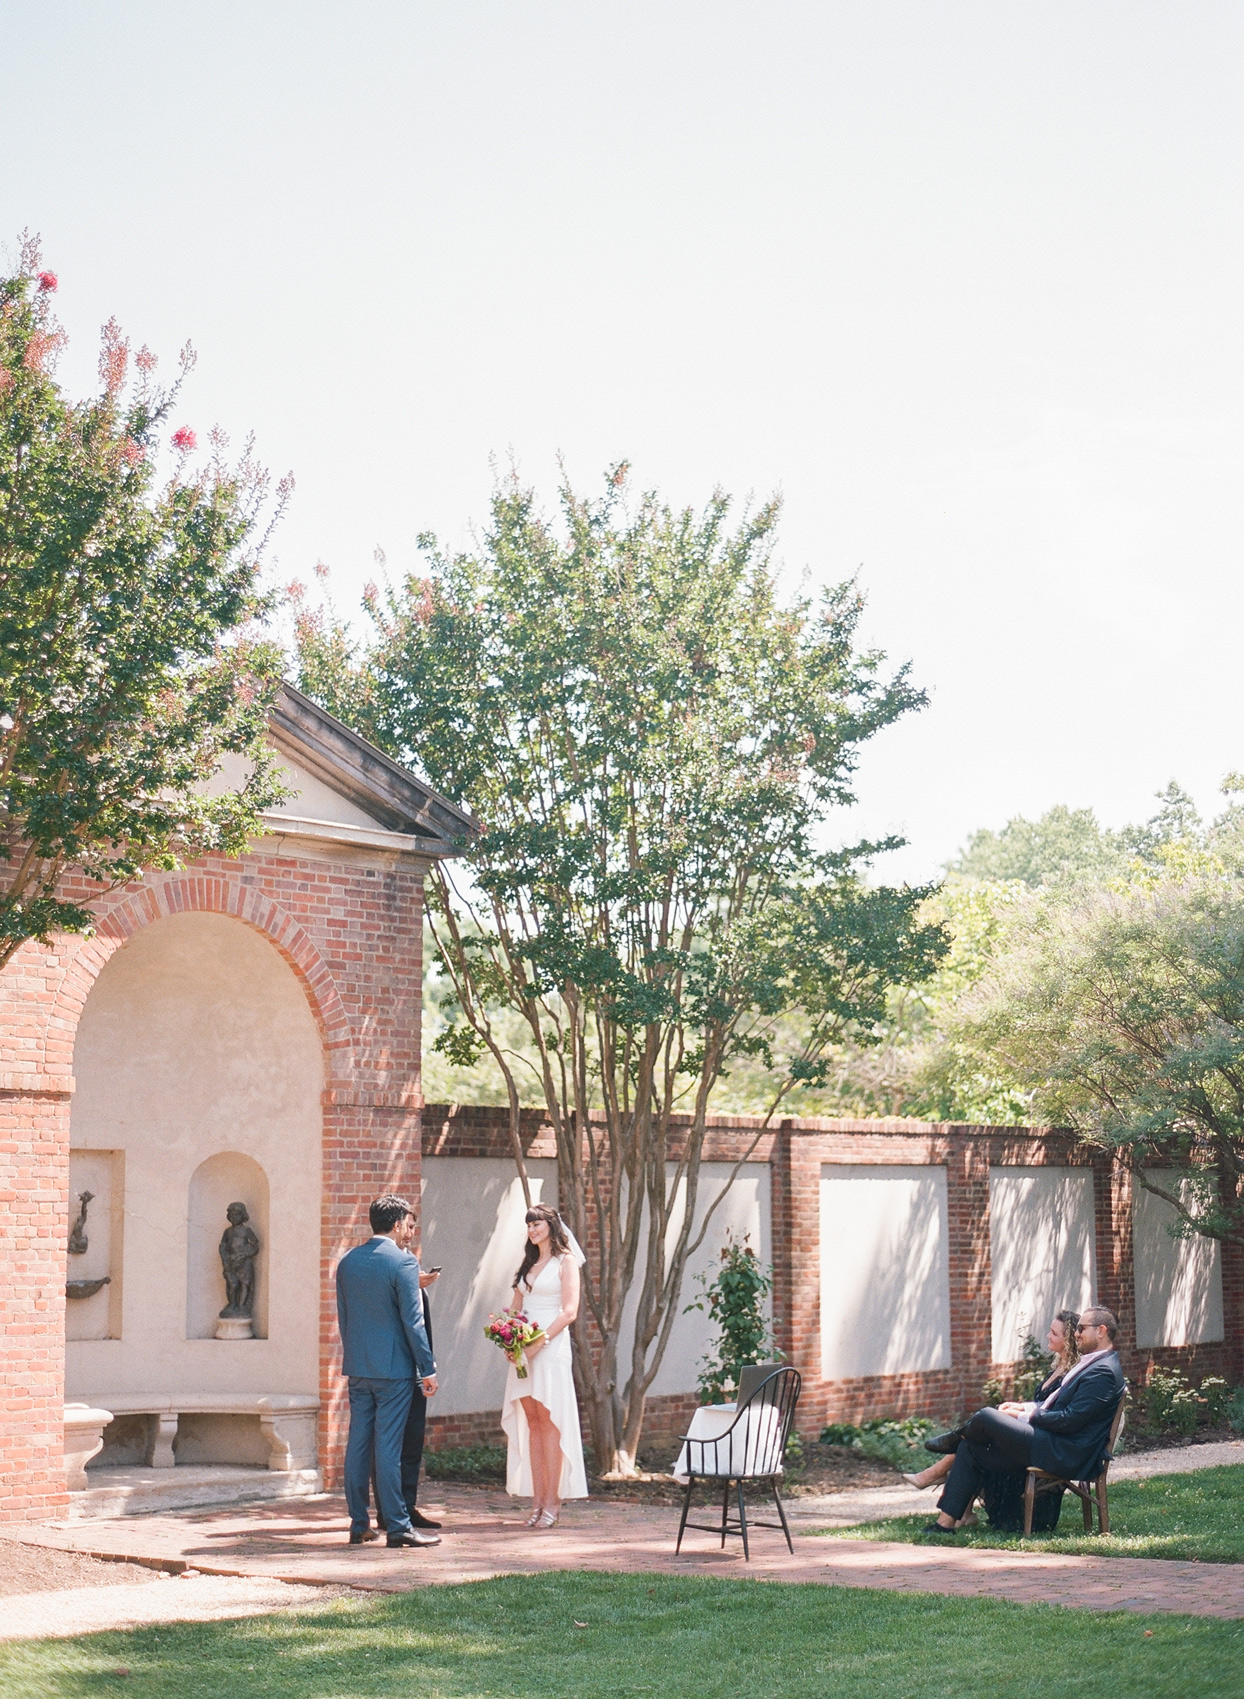 small wedding ceremony in courtyard